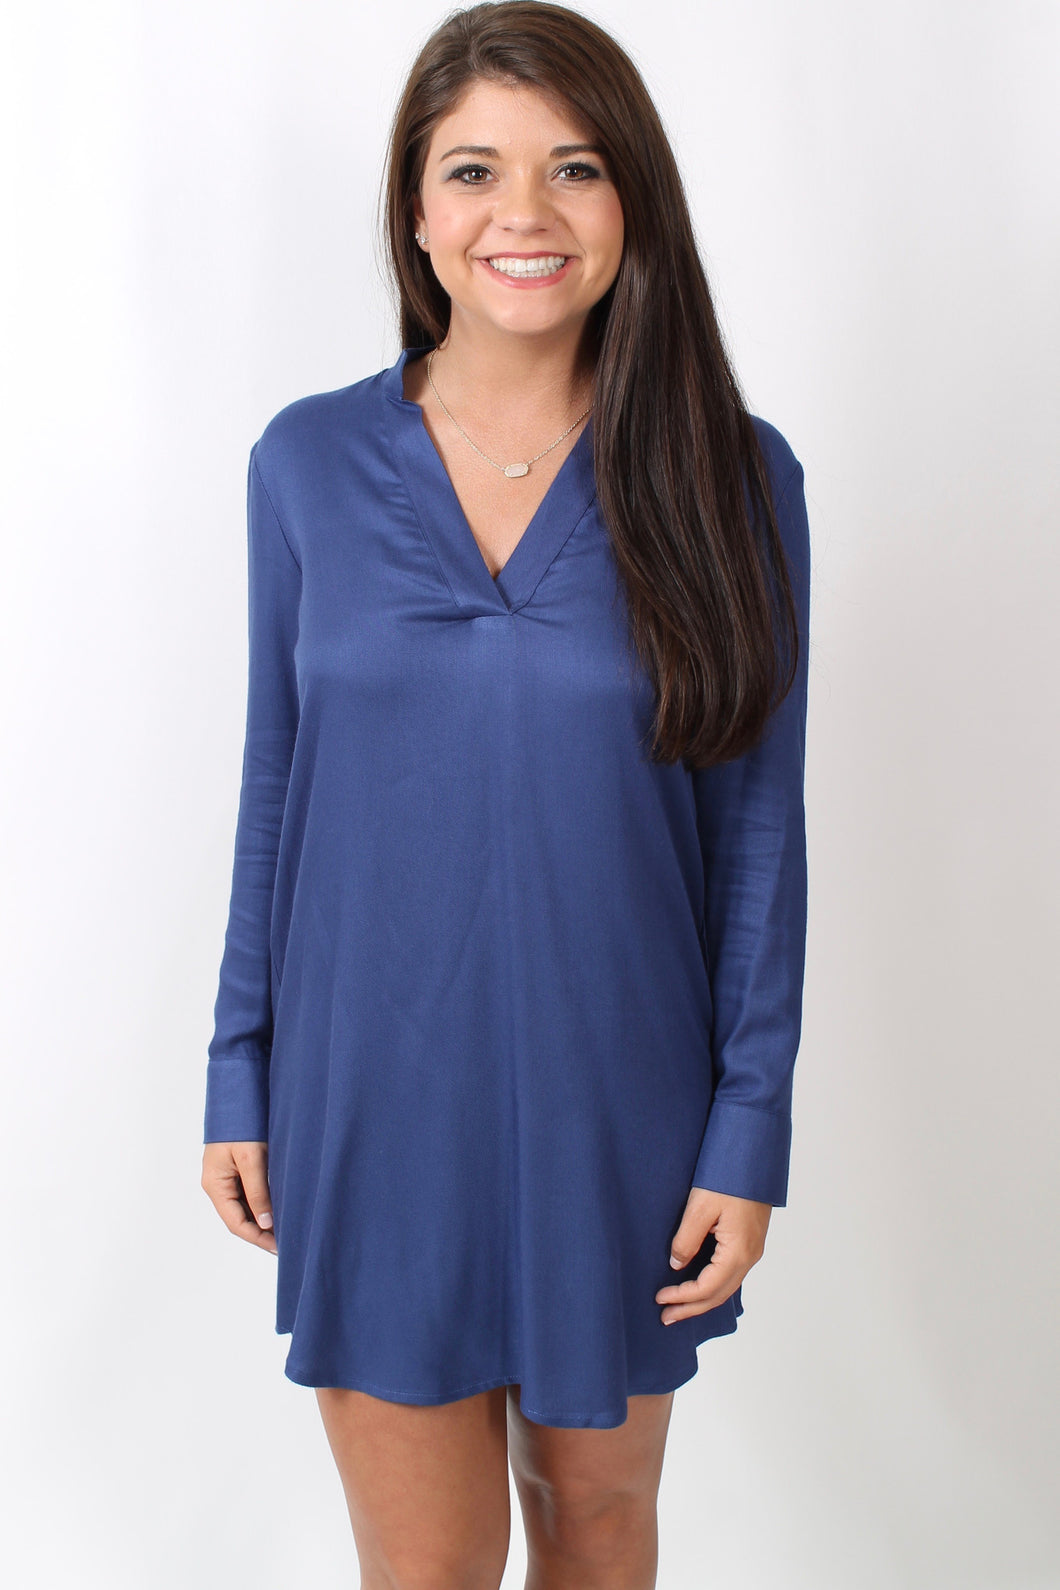 Indigo Dress- BB Dakota Hartman Dress Front